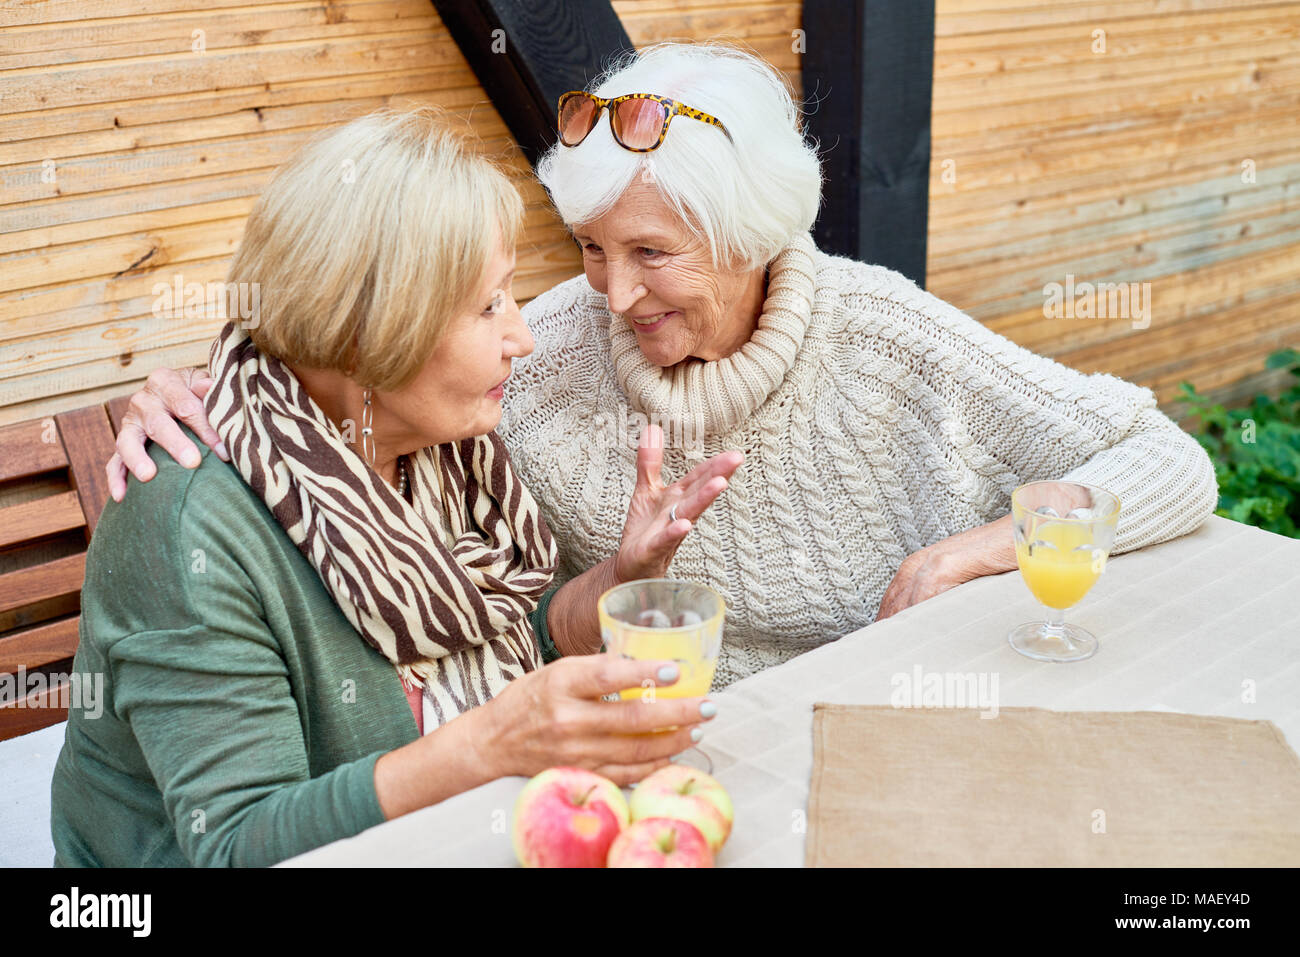 Les copines dans Cafe Ensemble Photo Stock